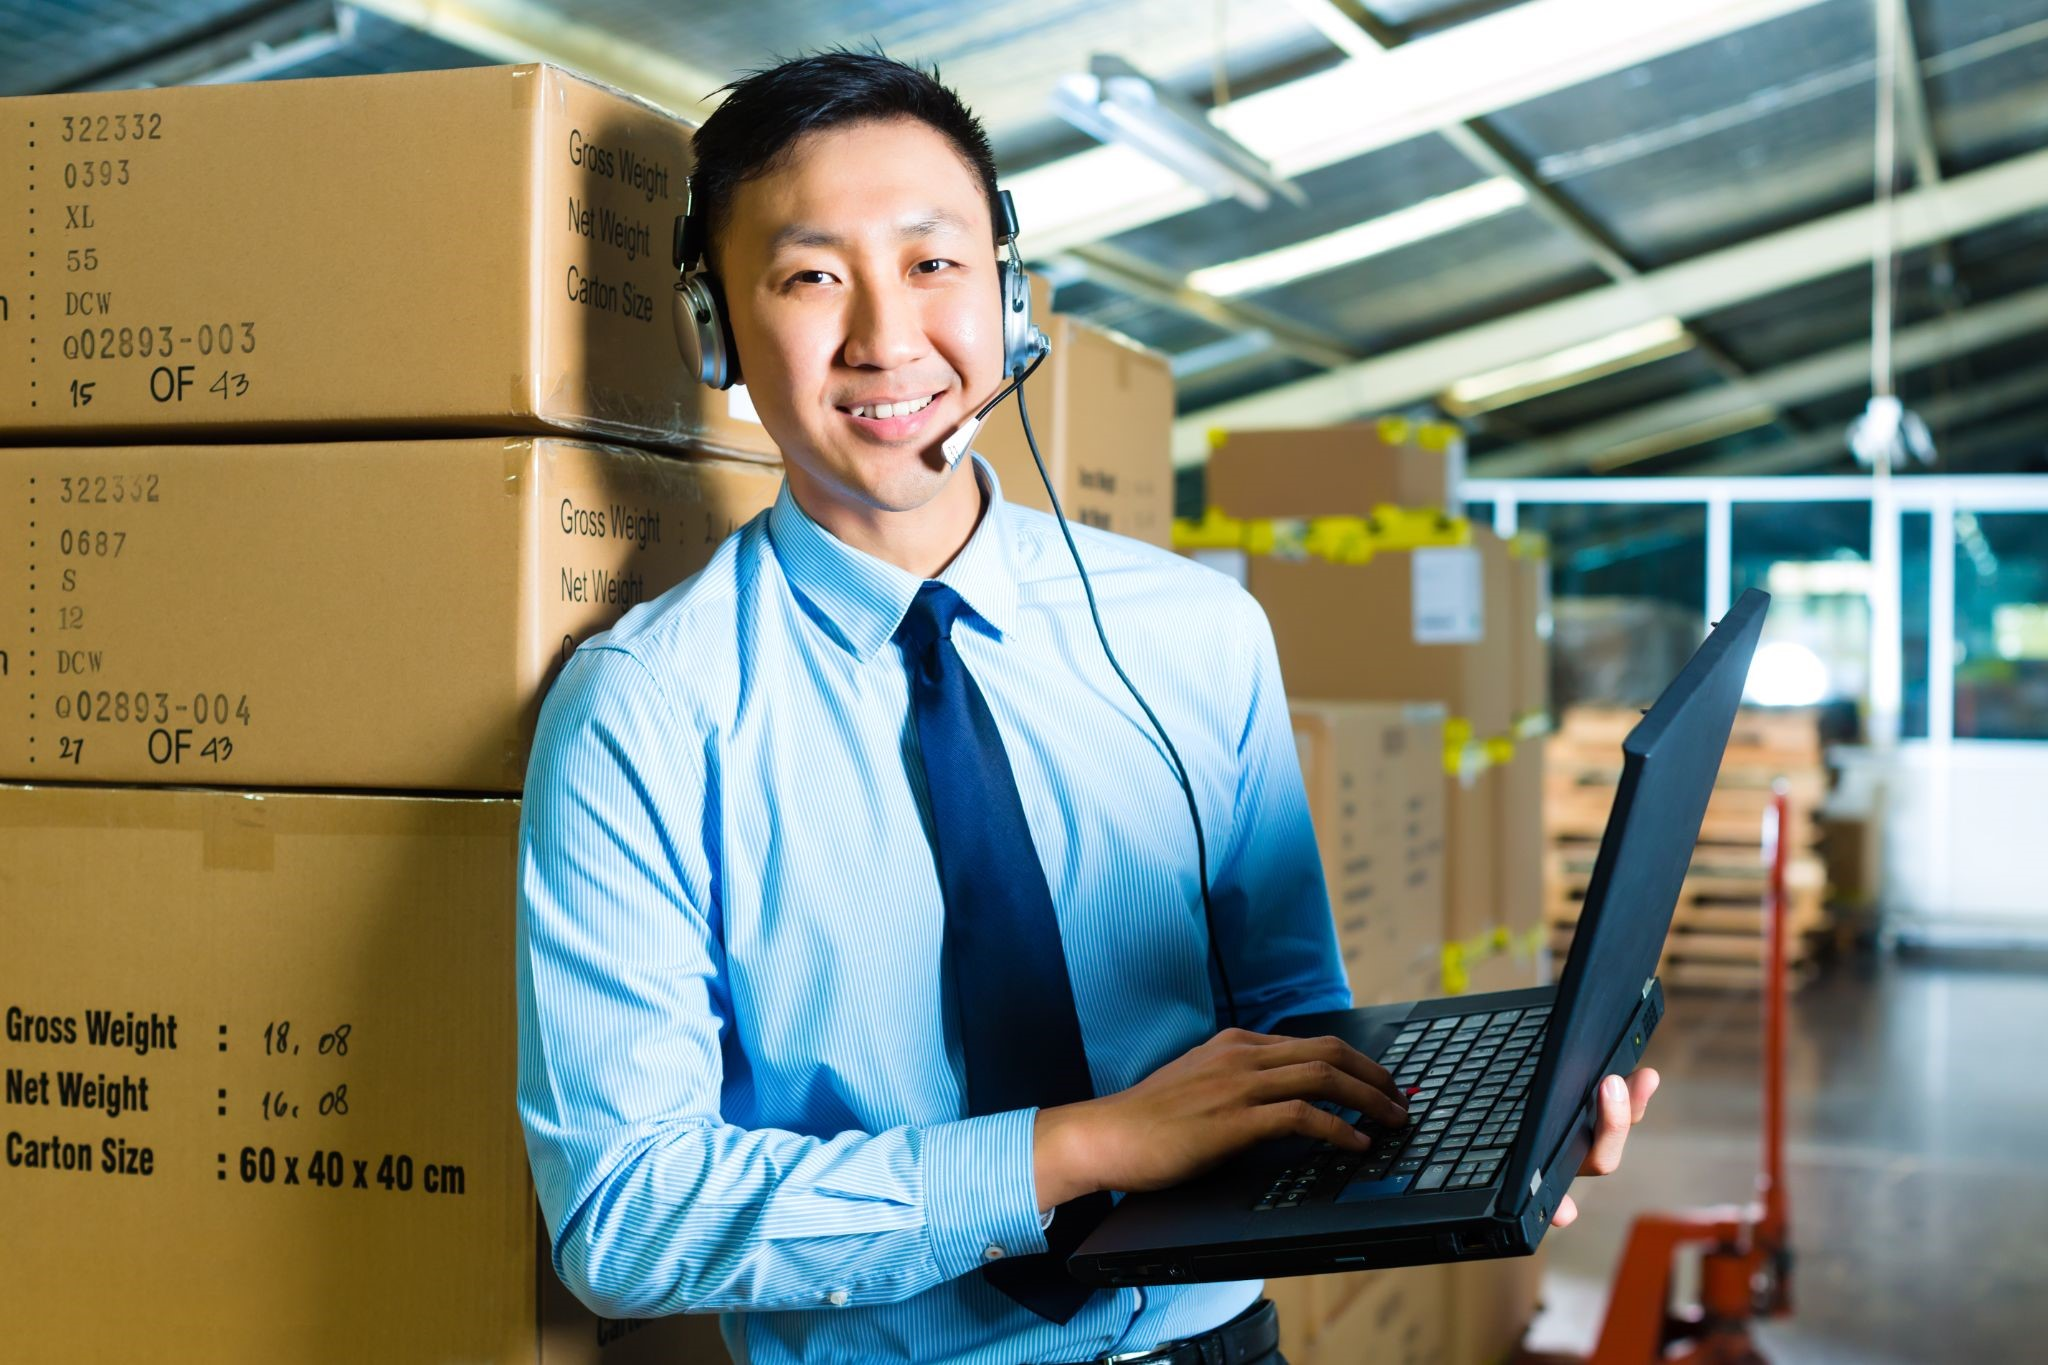 Clearing and Forwarding Companies – Overview